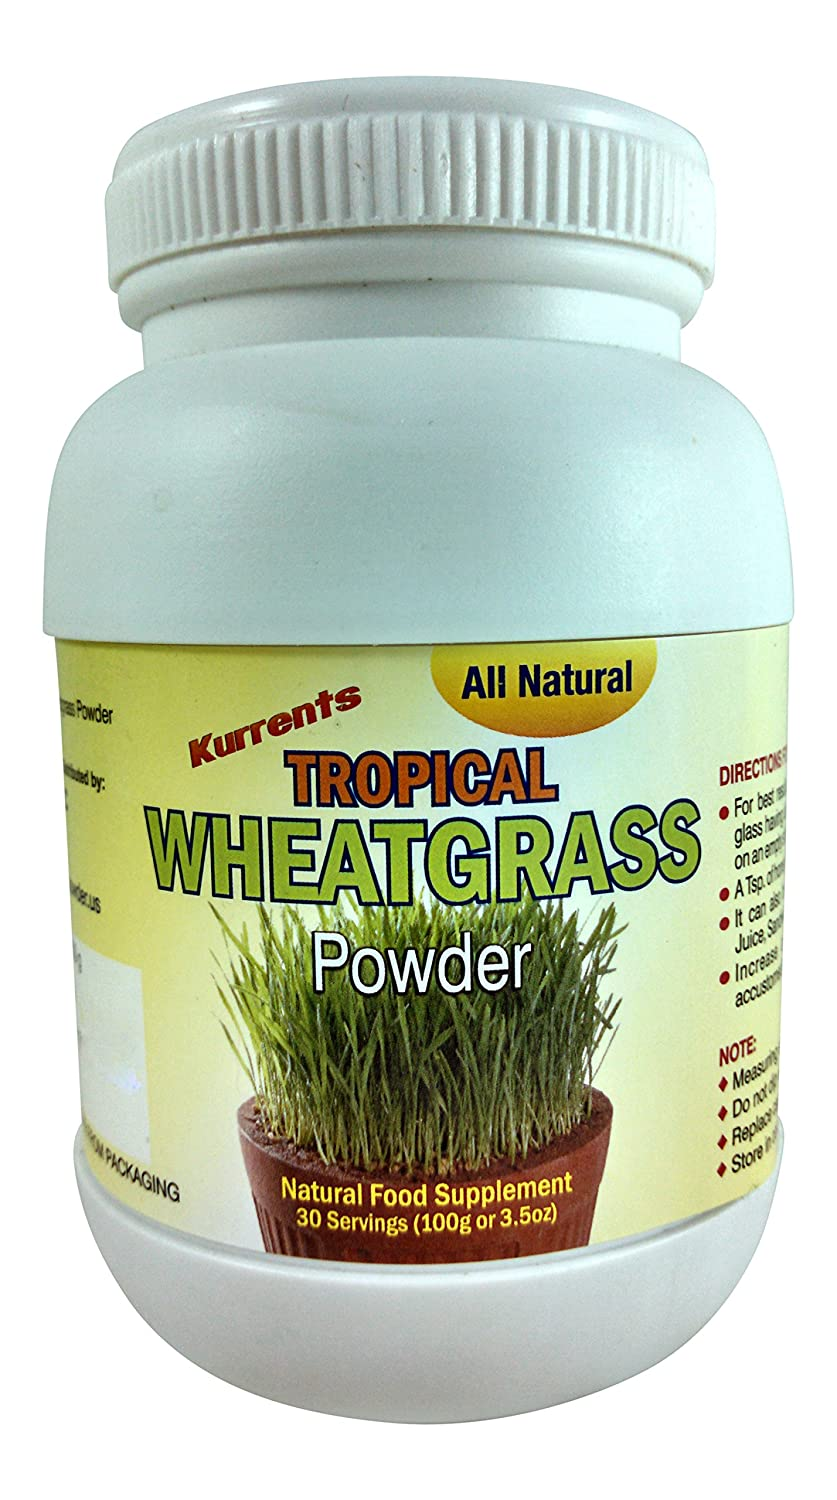 Tropical Wheatgrass Powder